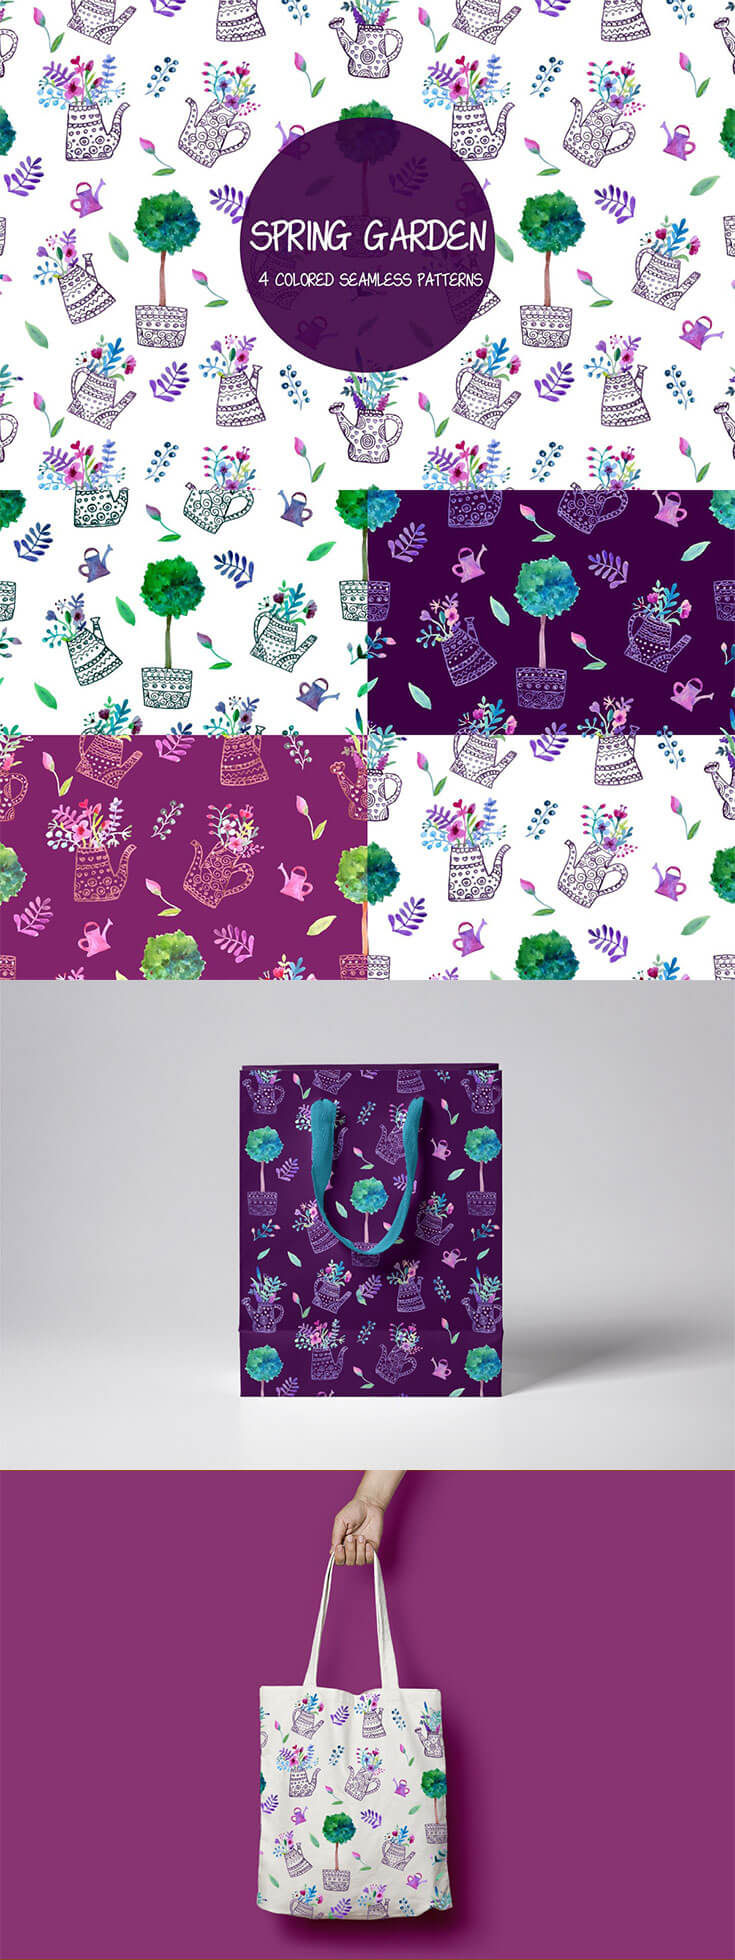 Free #Spring #Garden Vector Seamless #Pattern is a beautiful set of 4 color options. The possibility of applying graphics is huge. It can be clothes, home textiles, gift wrapping, stationery, wallpapers for home and much more. Each designer will come up with his own version of the application.